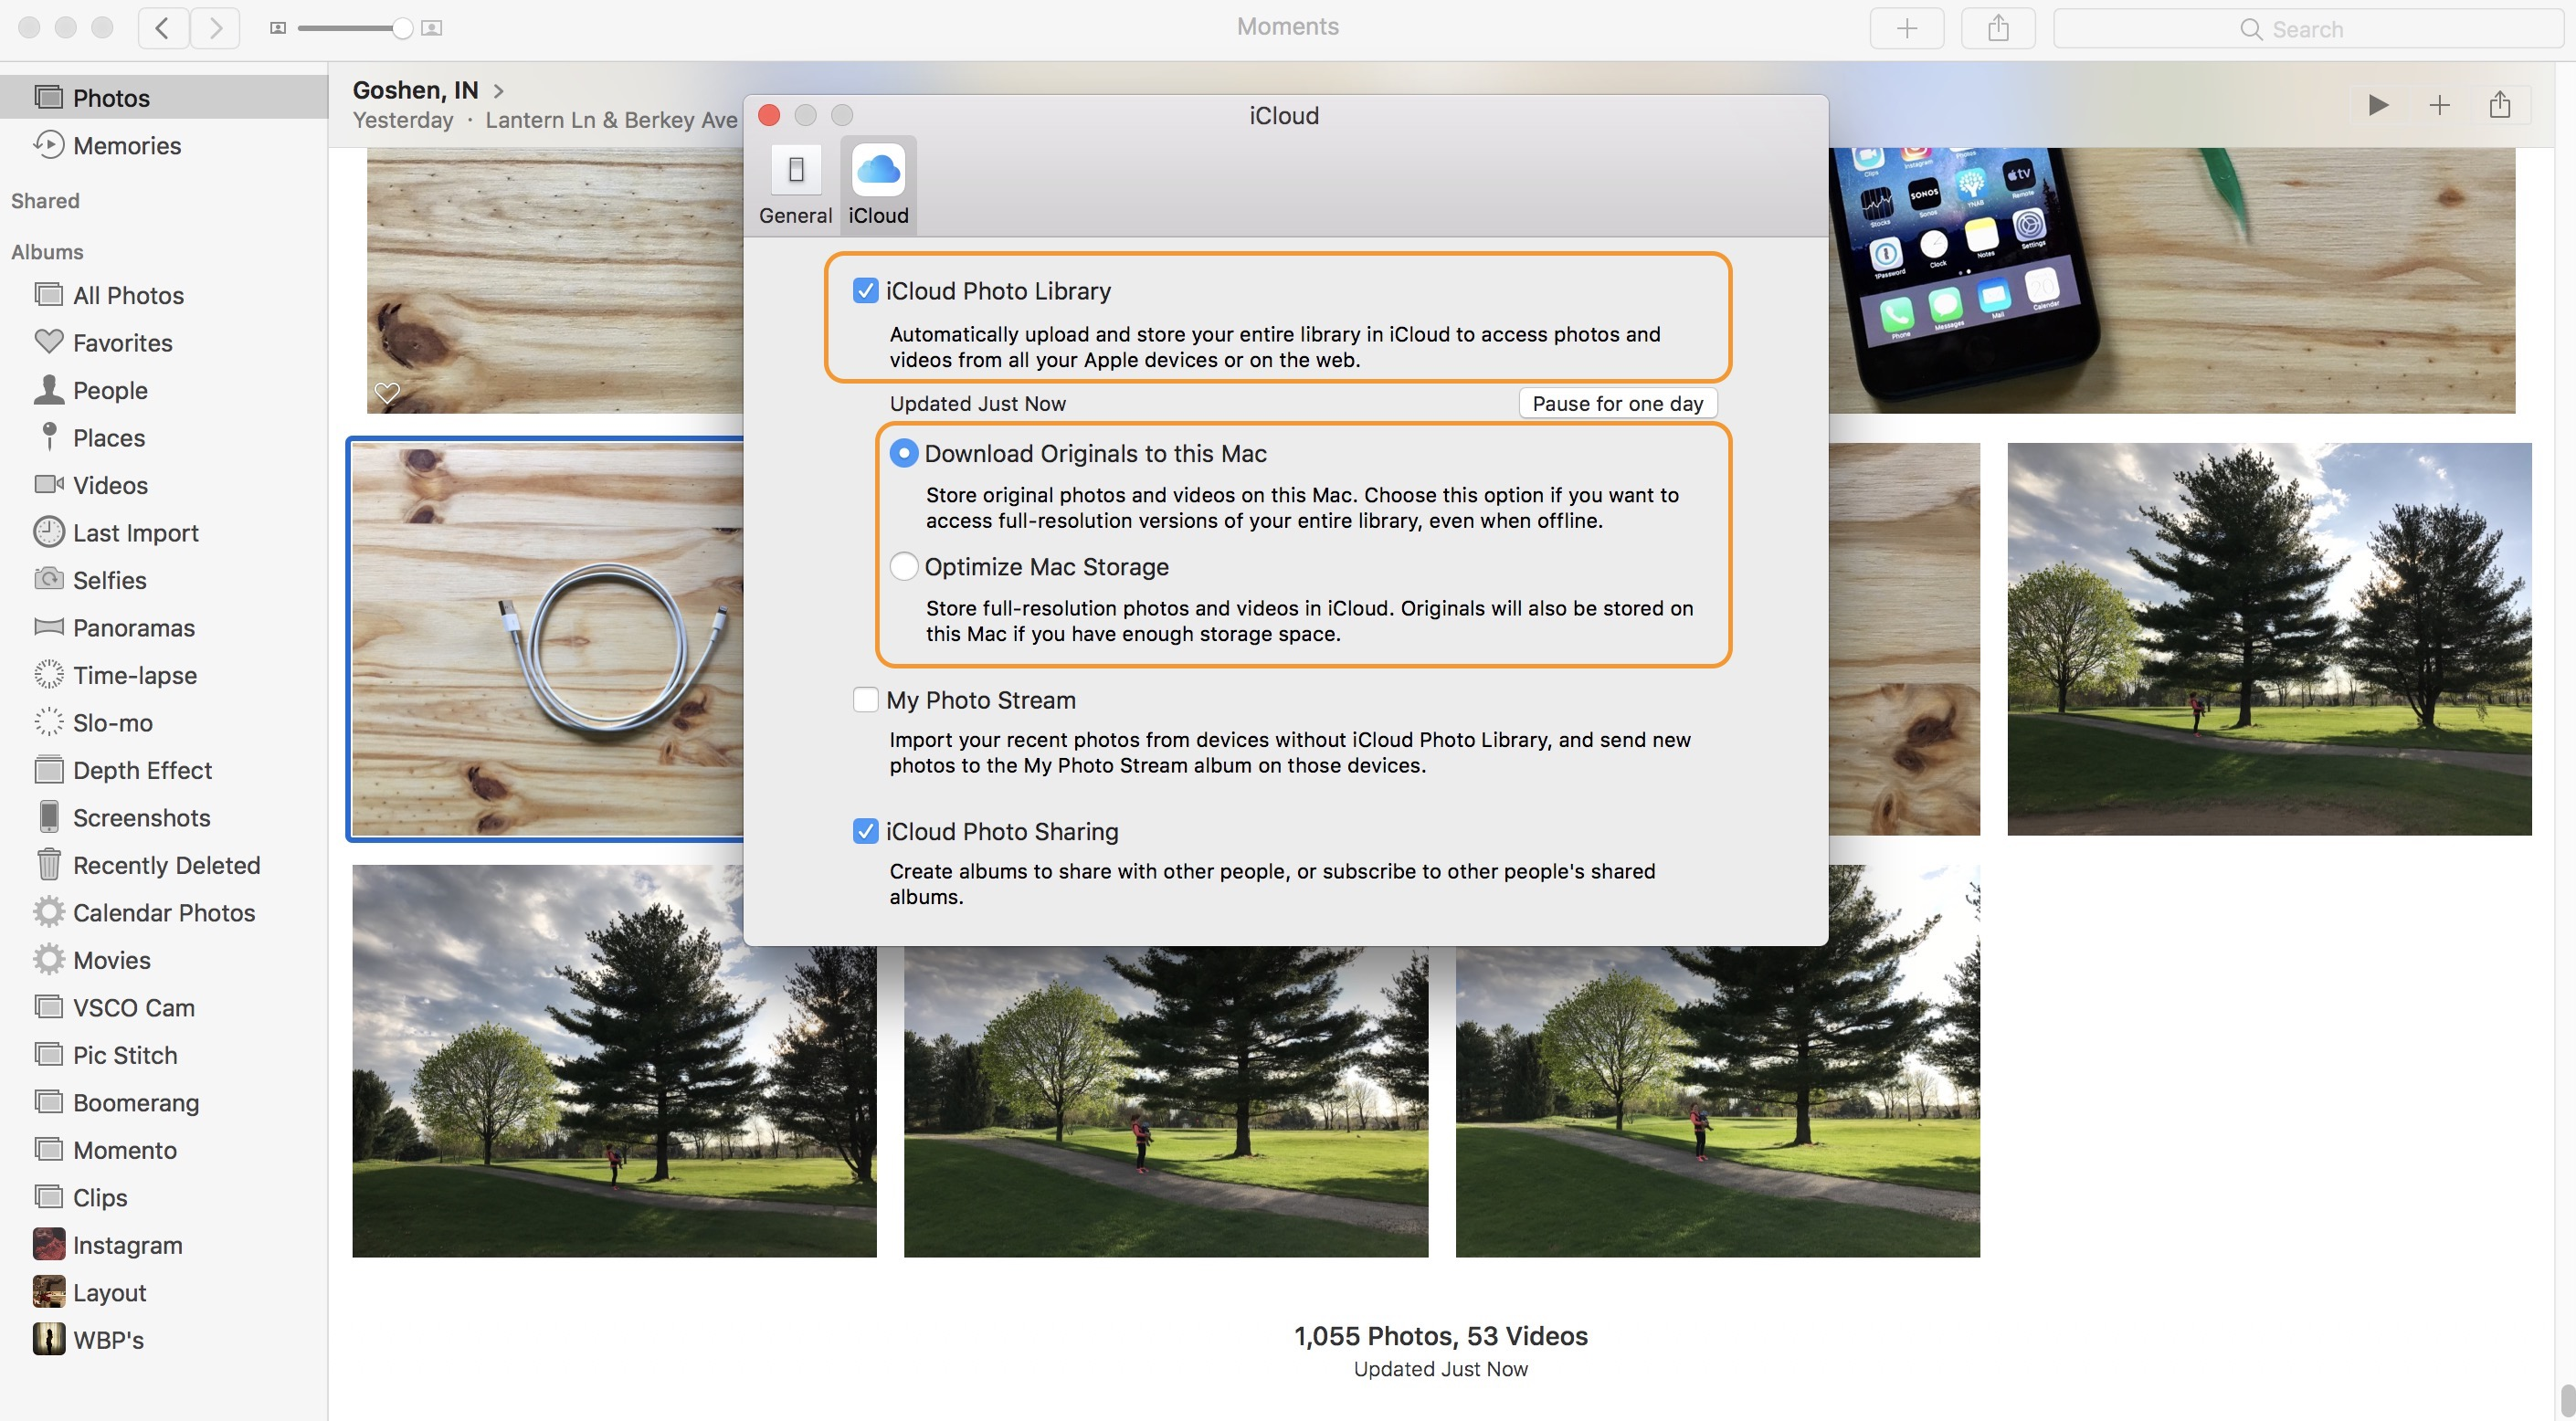 Image showing the macOS Photos application preferences